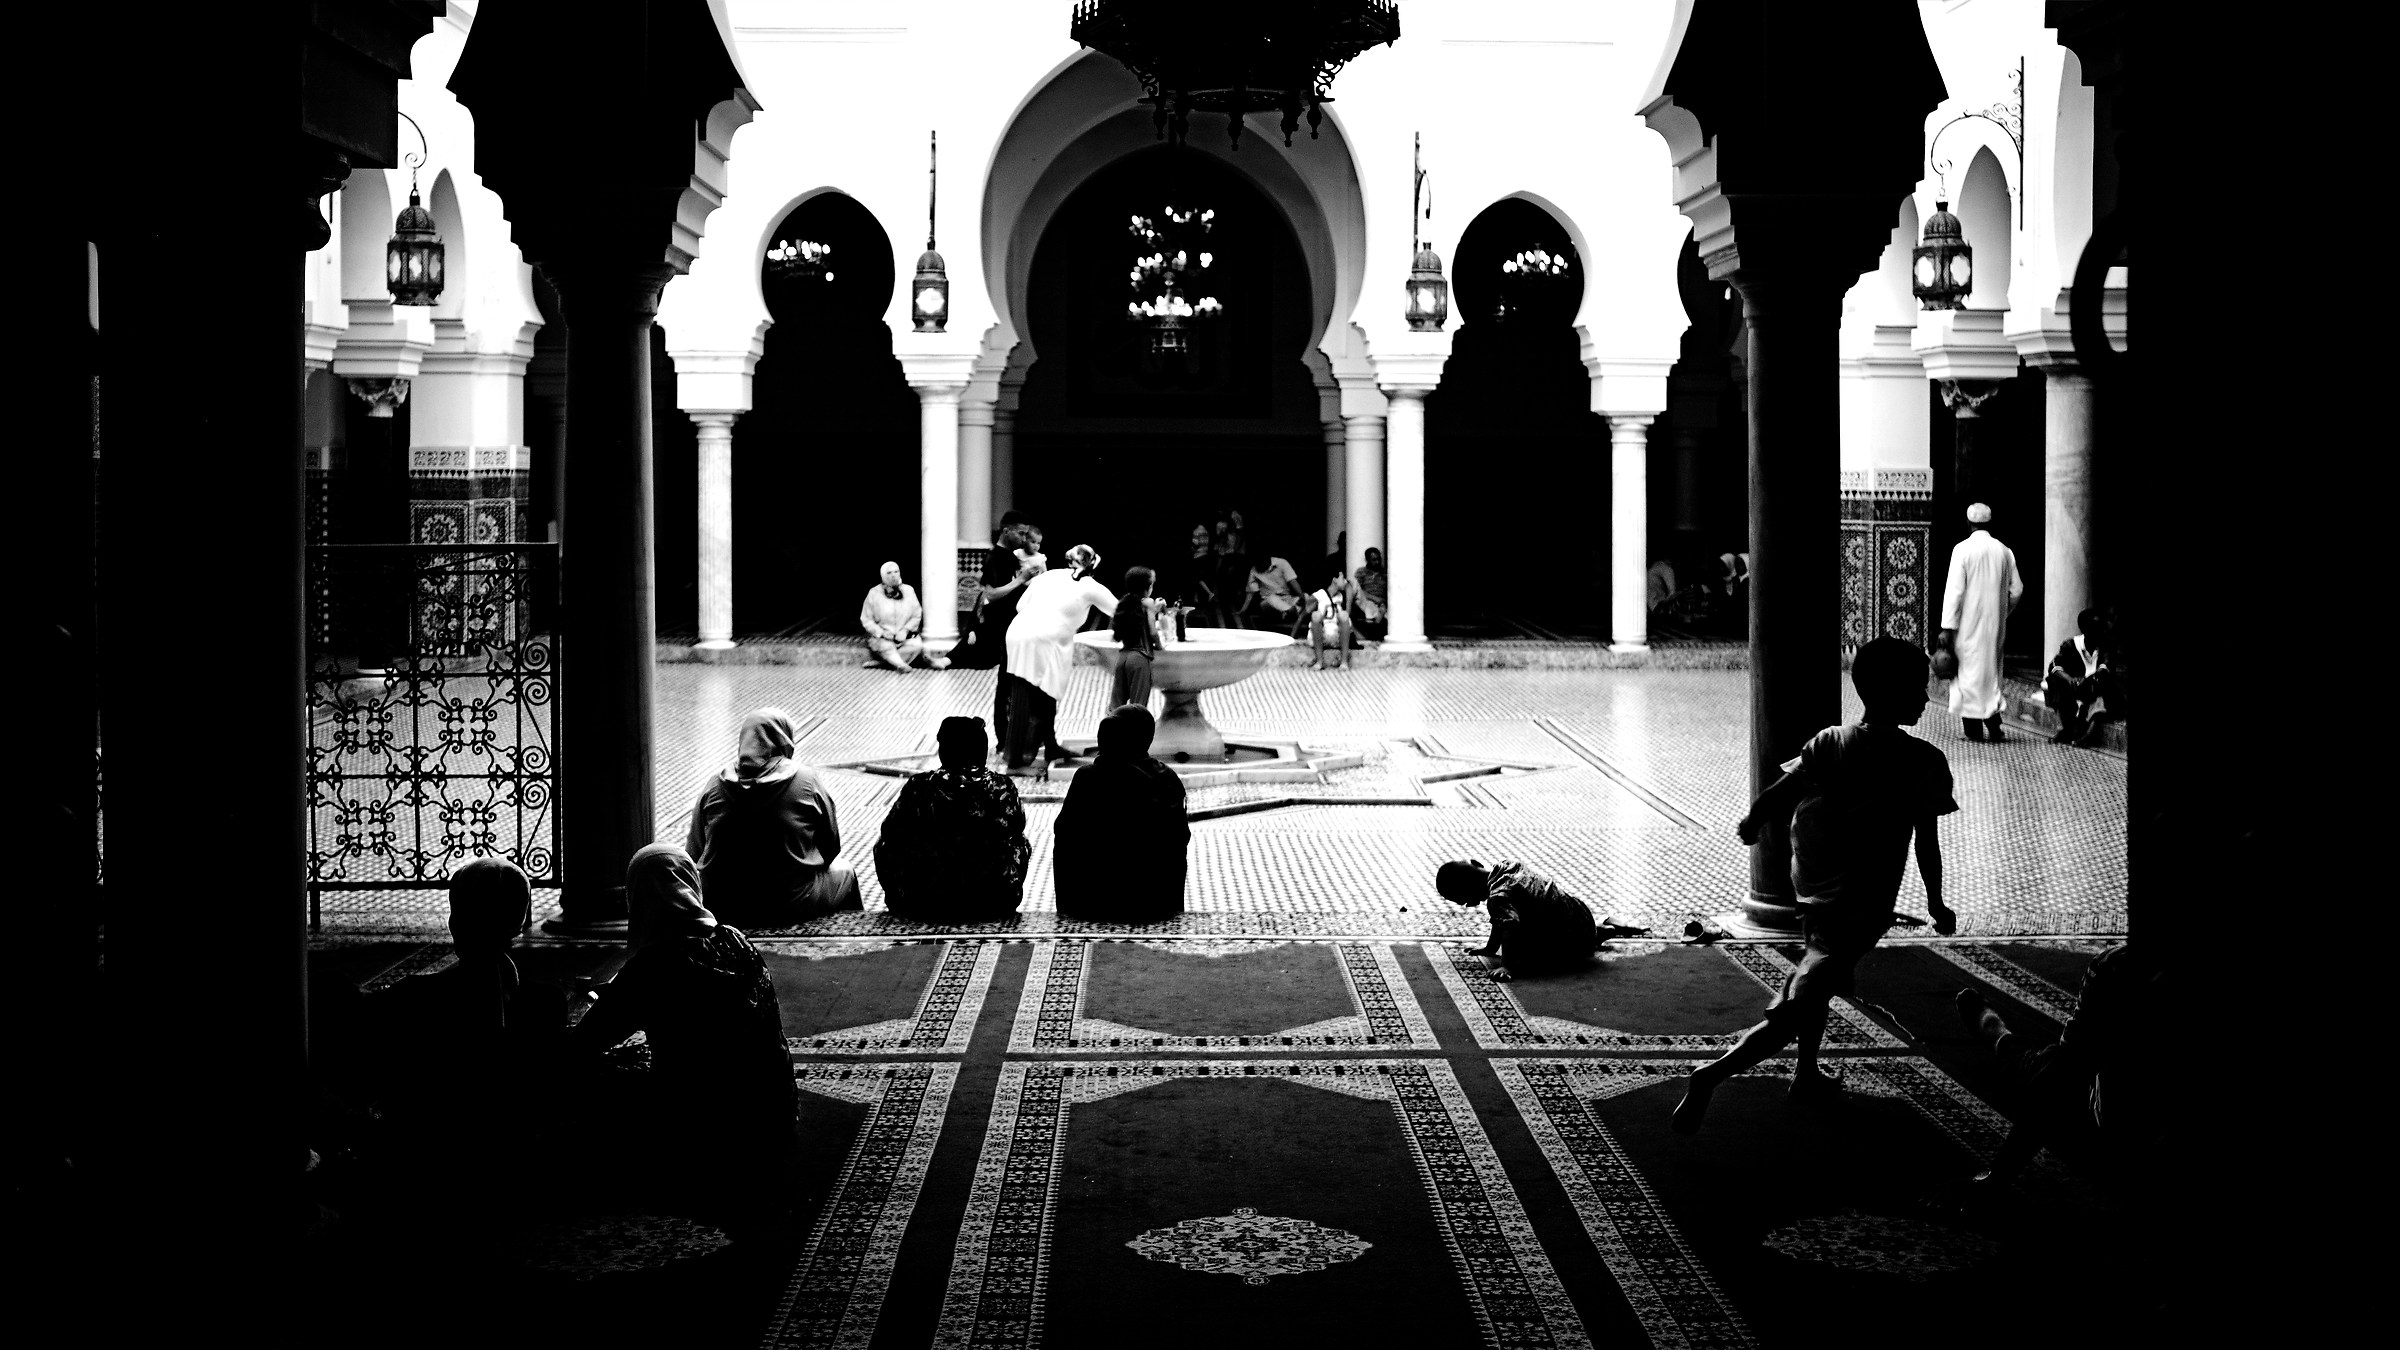 The mosque...